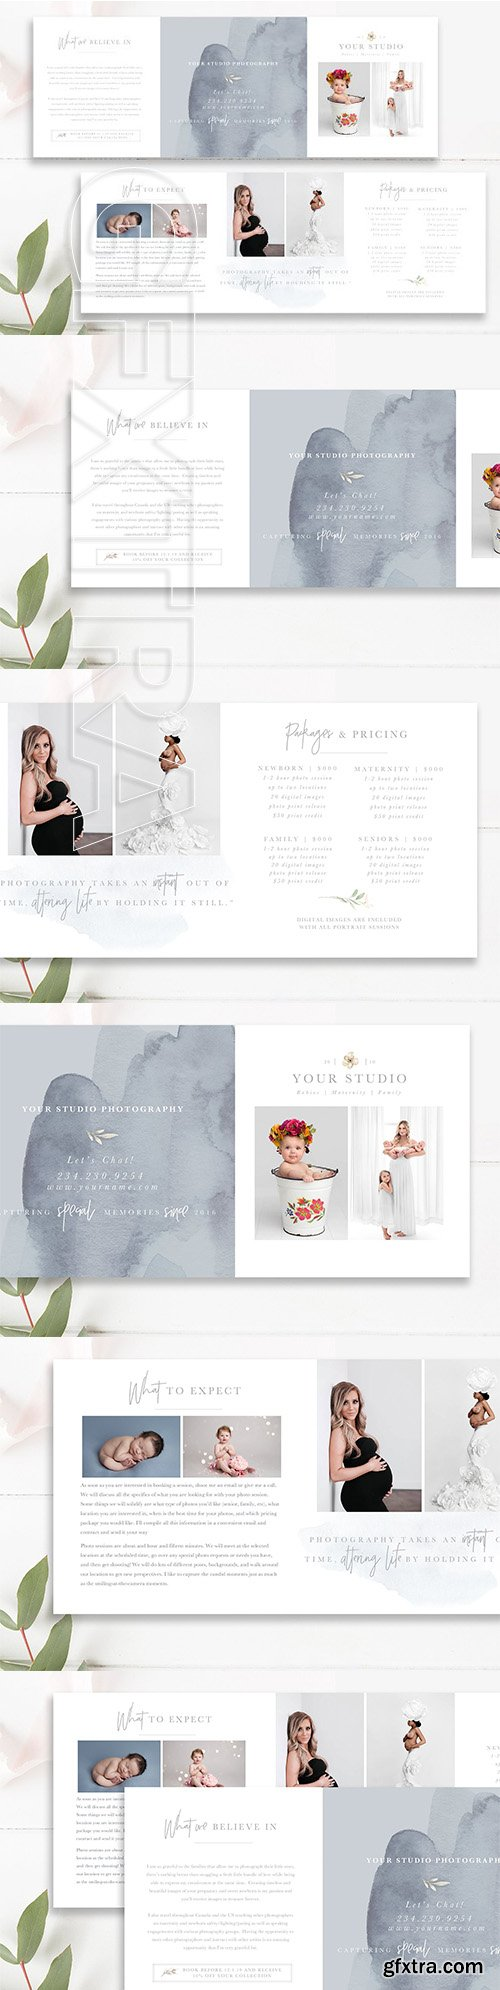 CreativeMarket - Photography Trifold Brochure 2685630